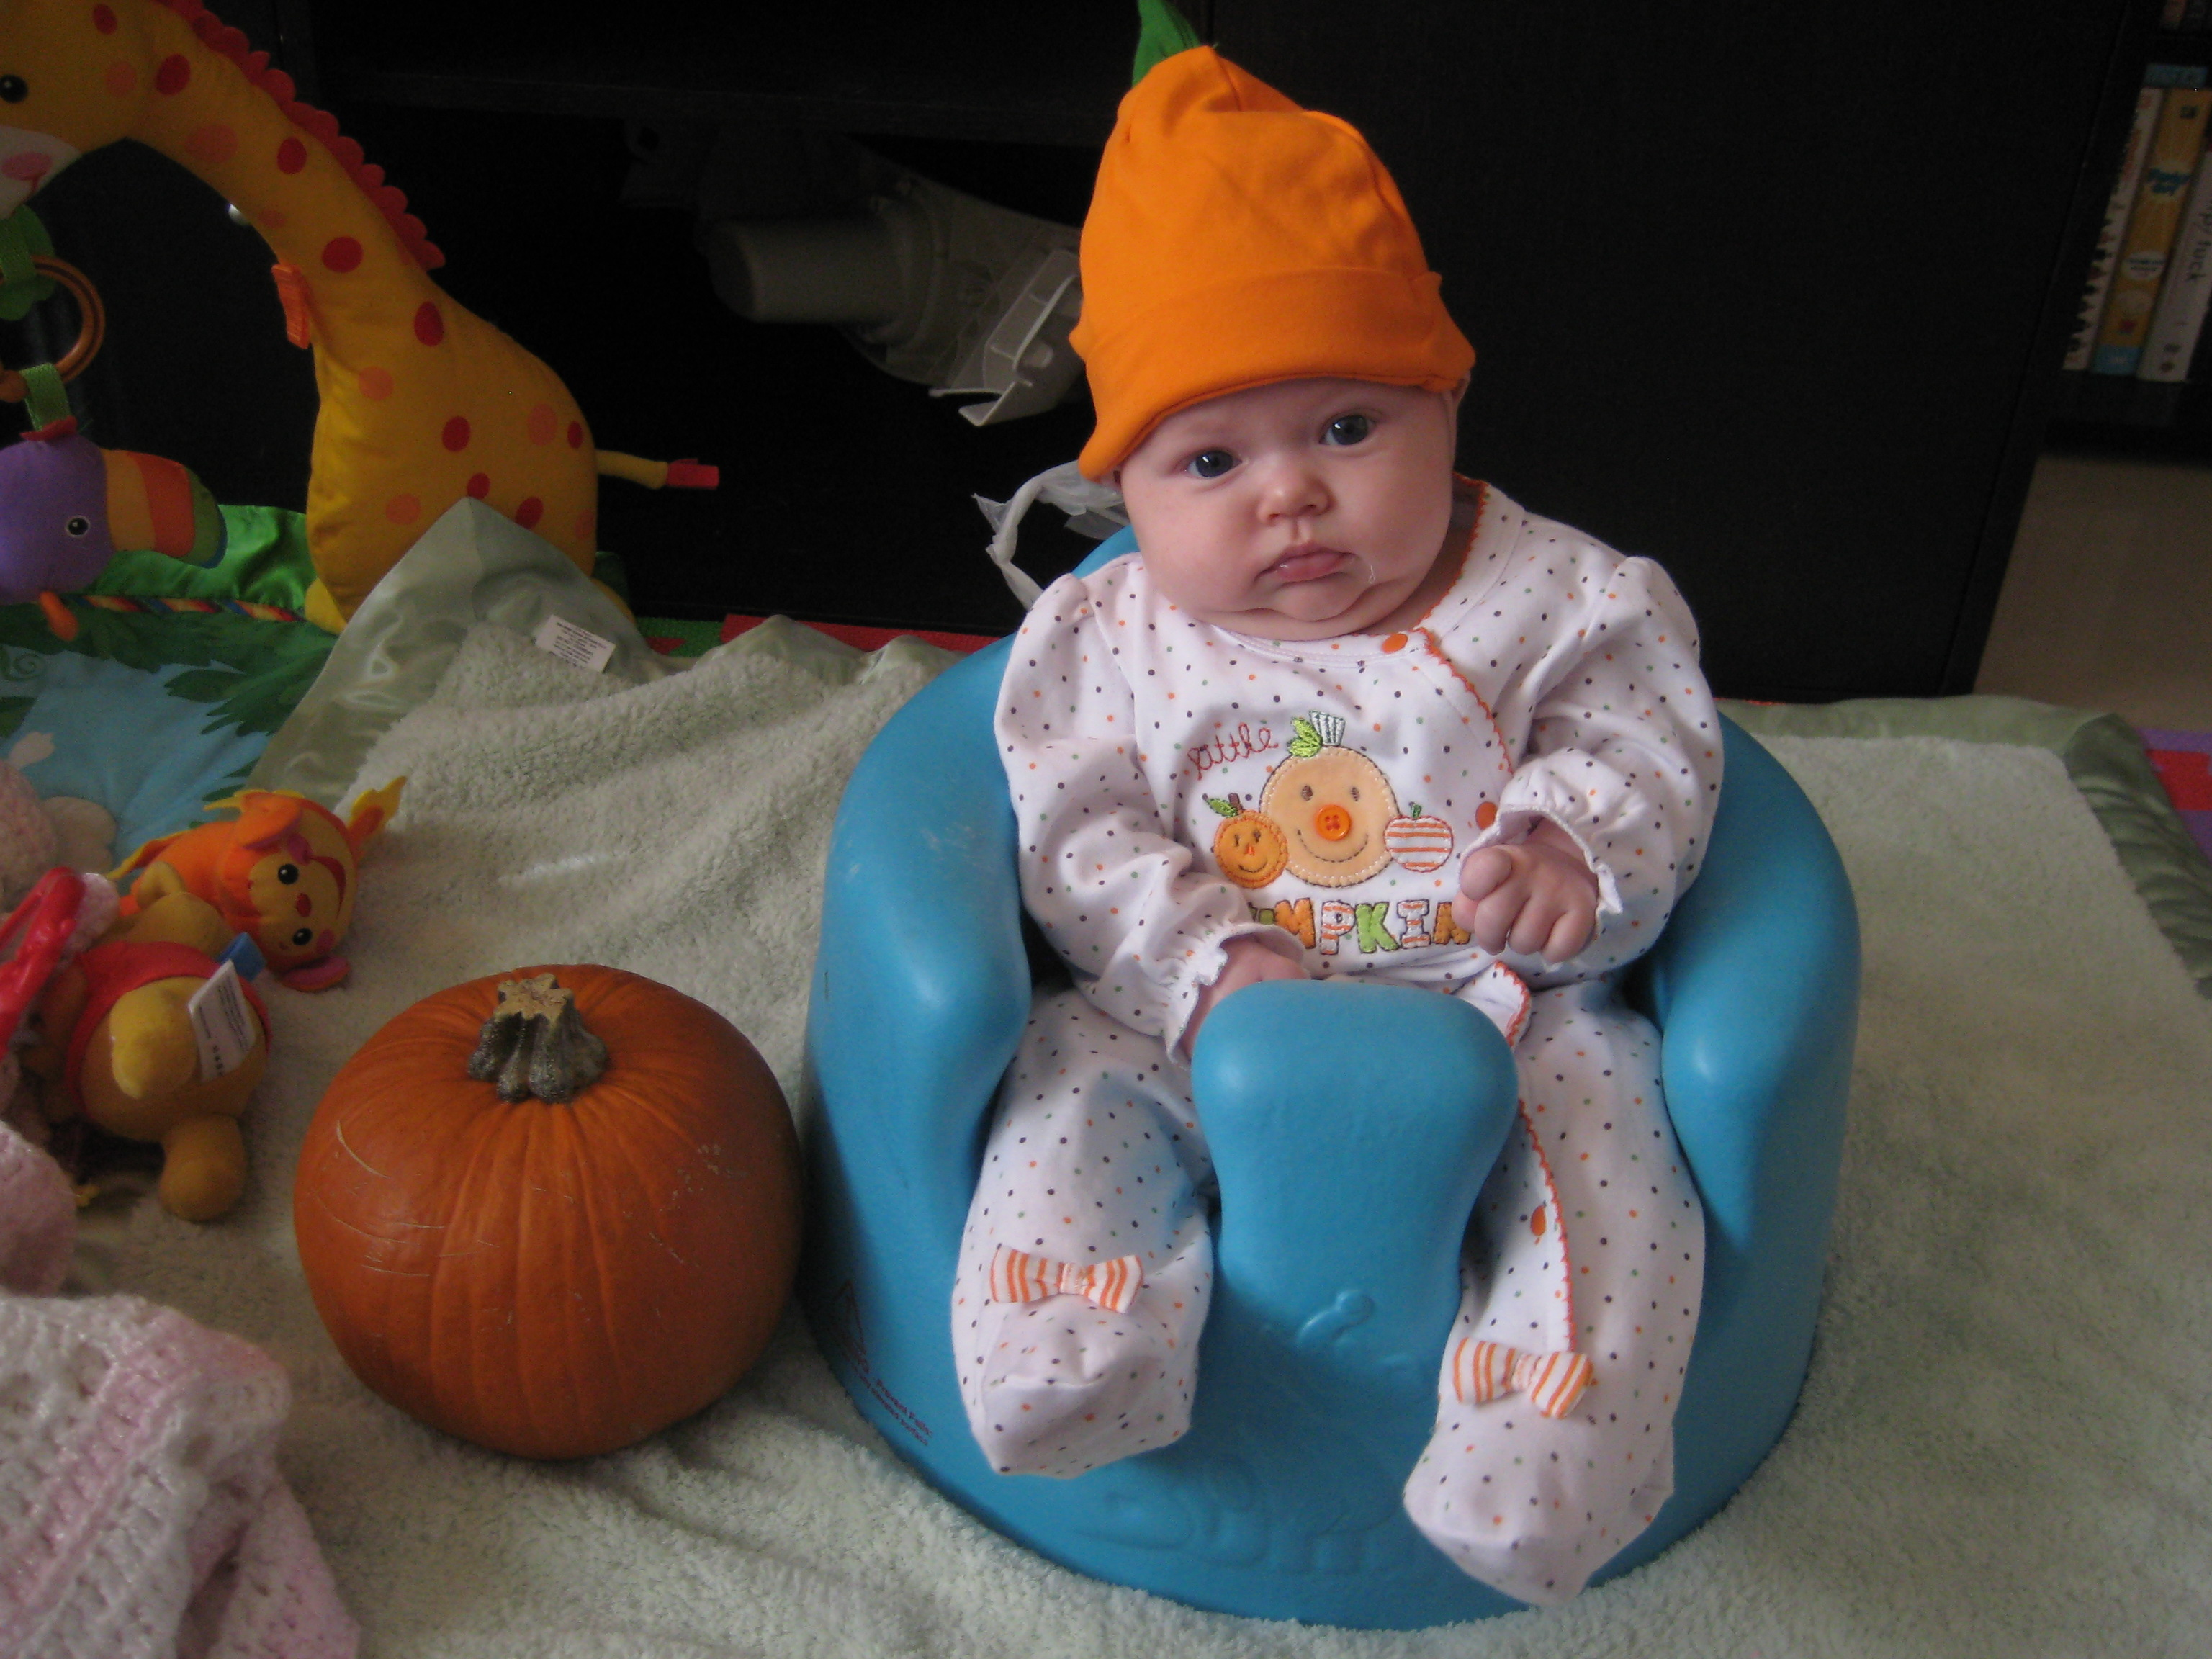 bumbo chairs for babies ergonomic chair features seat fleming focus